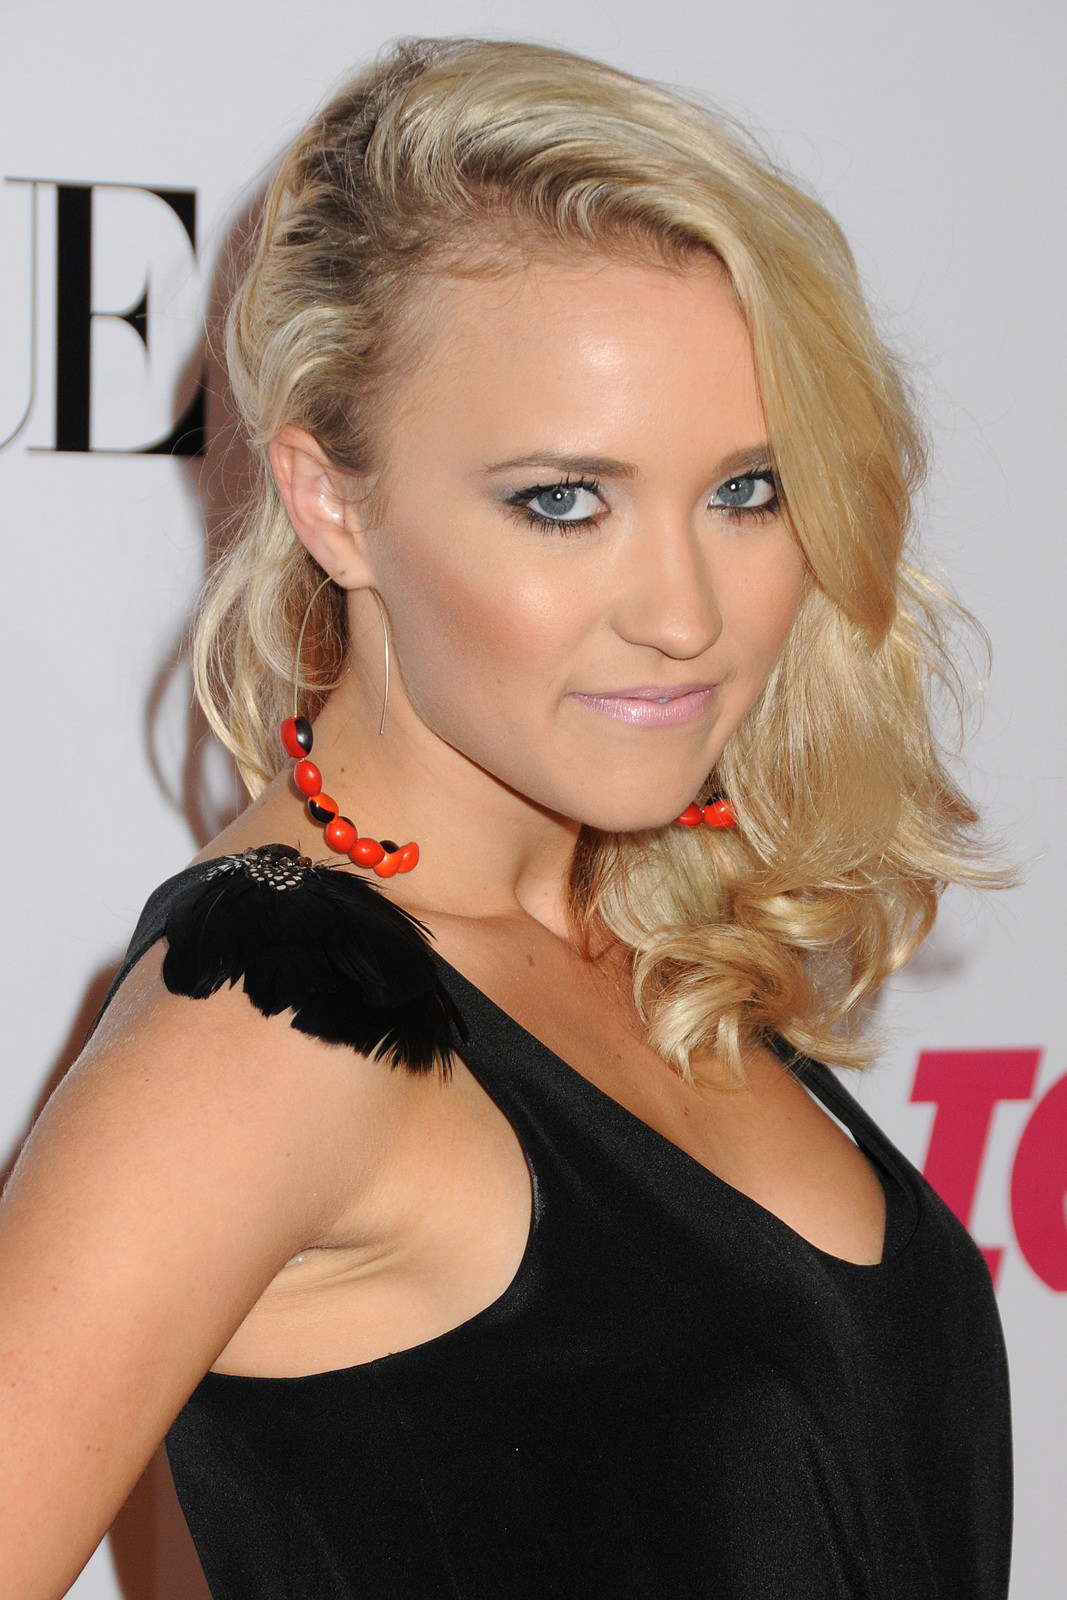 Emily Osment Photo Gallery